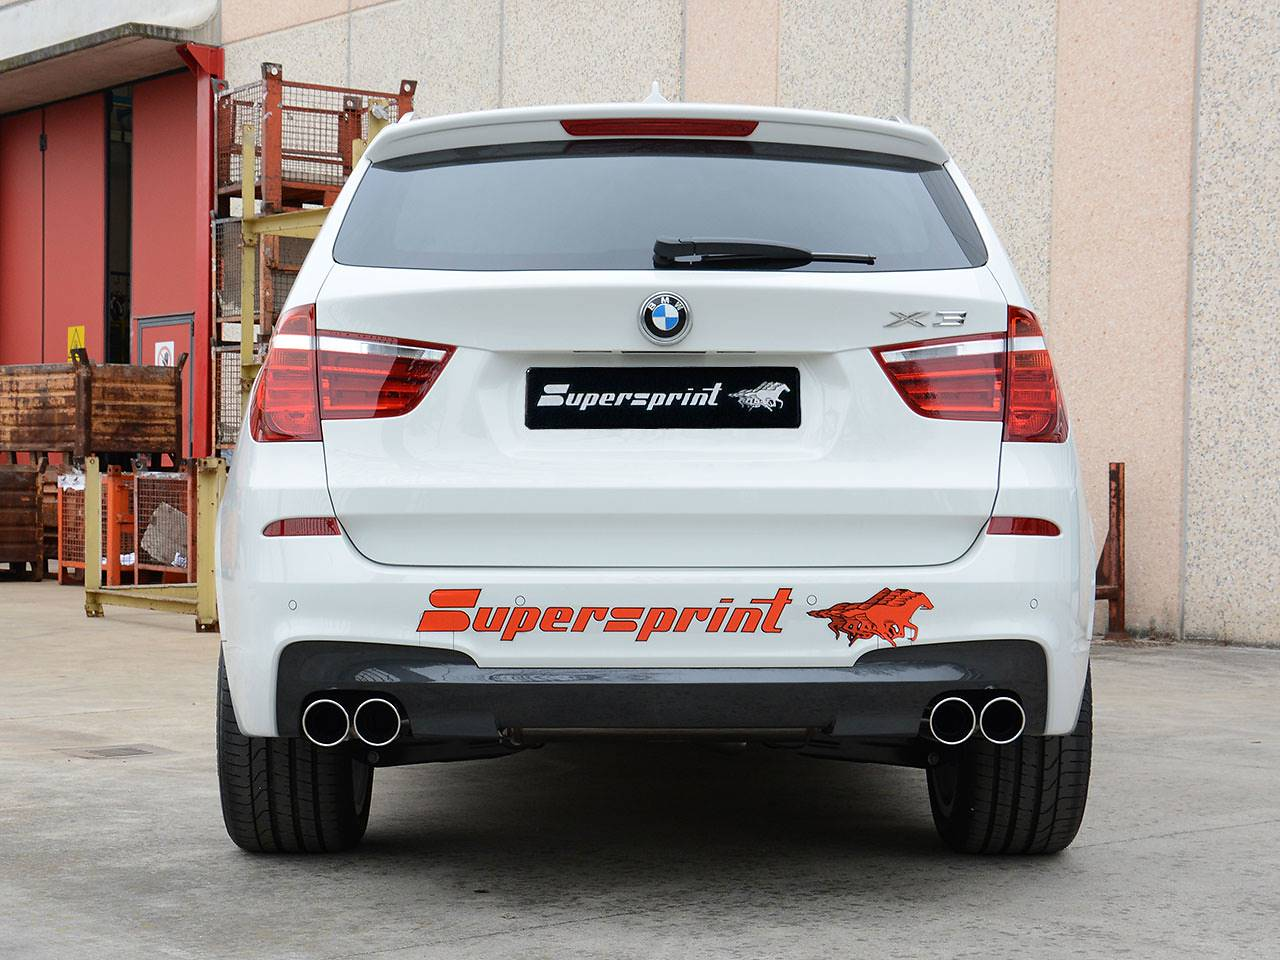 Supersprint rear exhaust OO90 986026 for BMW F25 X3 20d